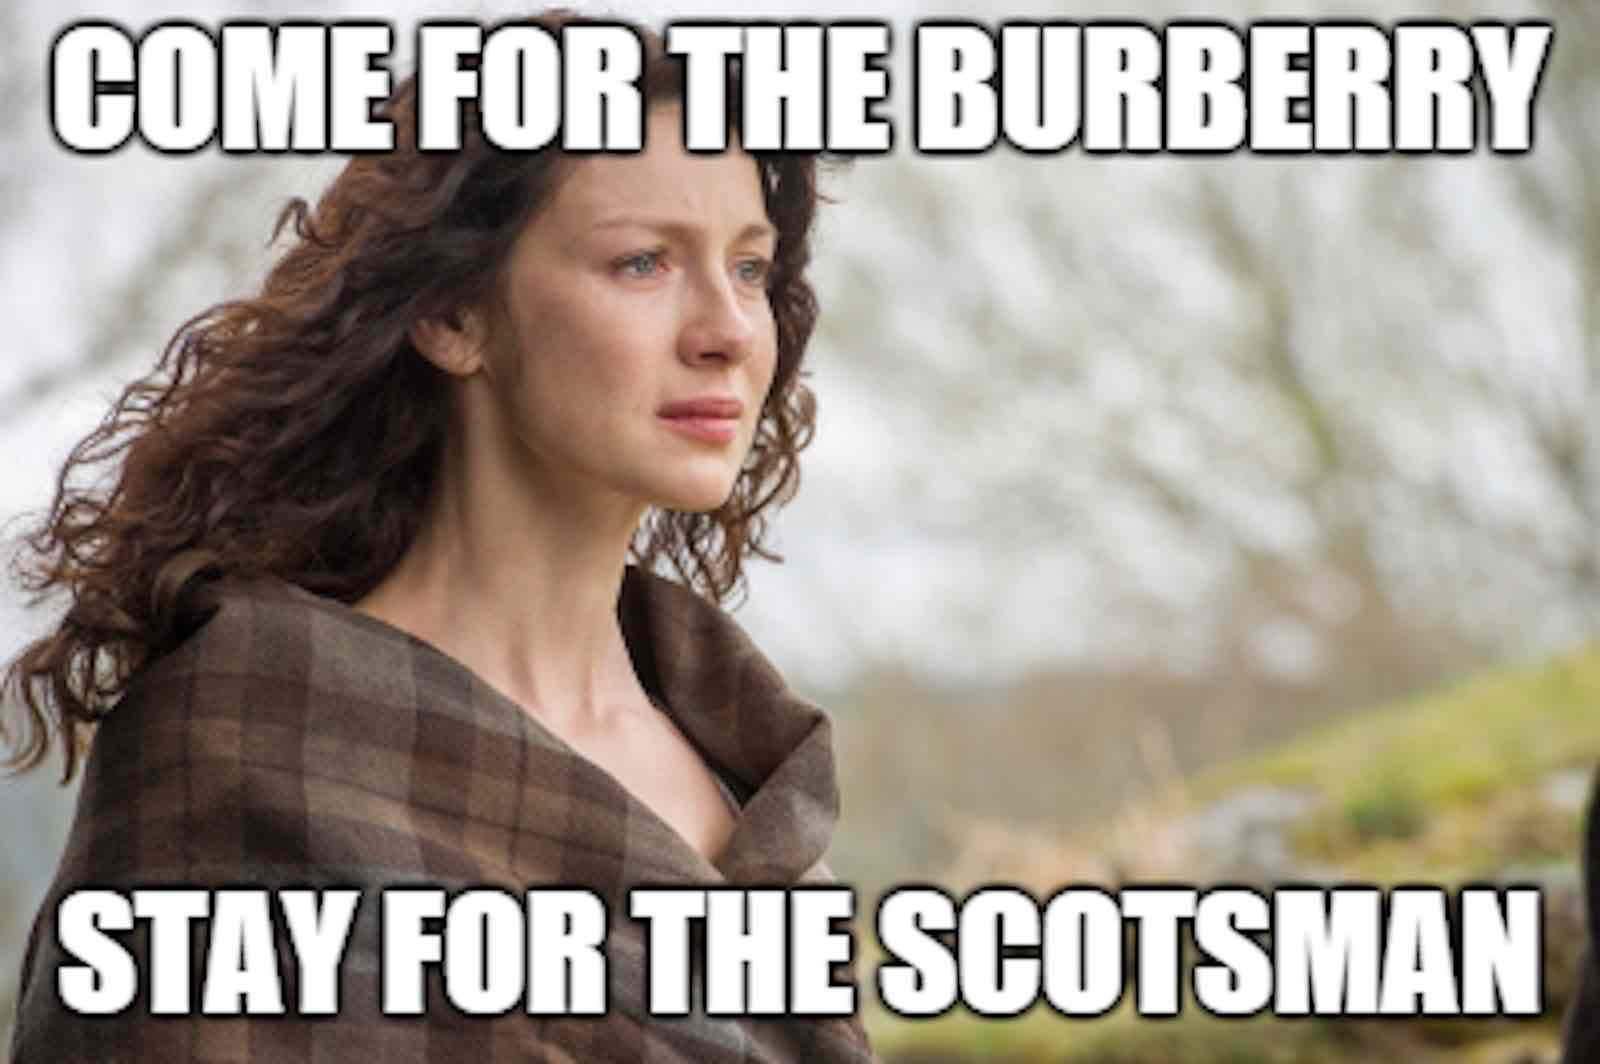 Outlander On Netflix The Best Memes On The Sexiest Scenes